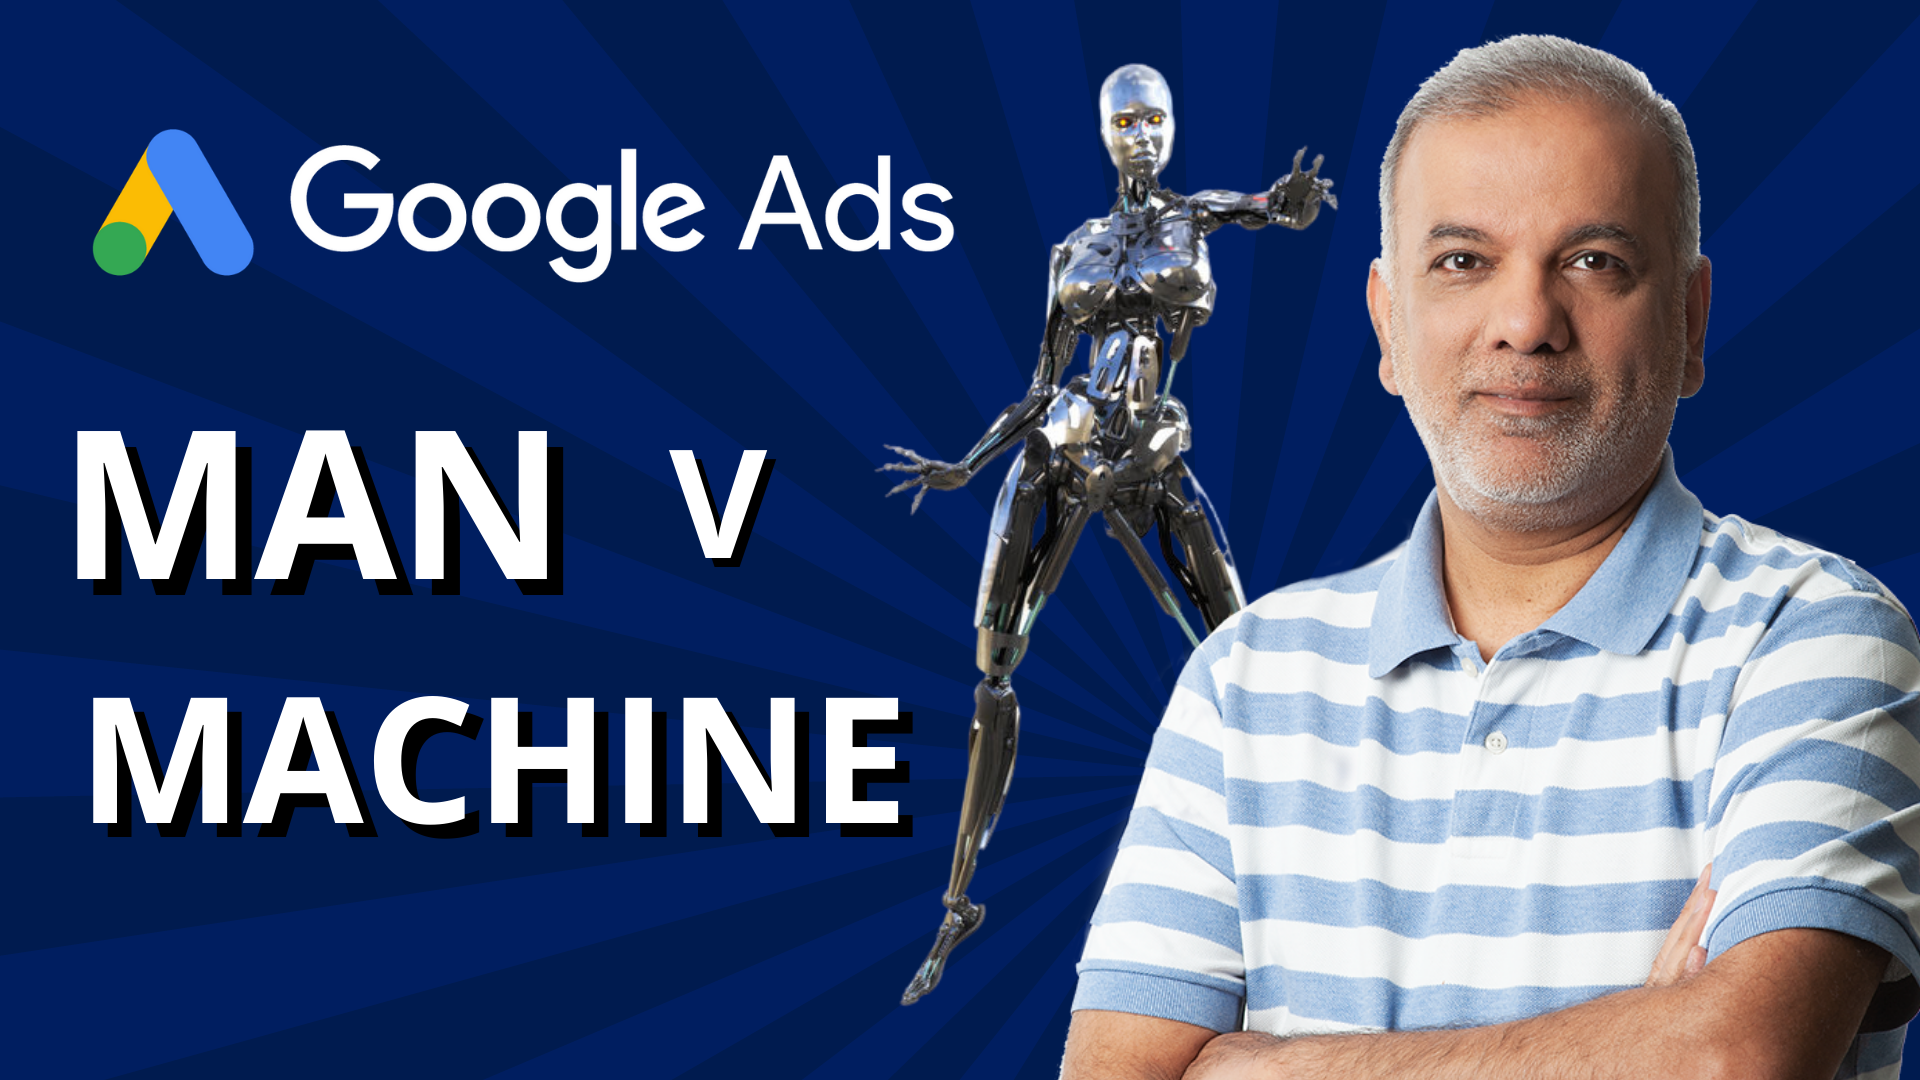 Google Ads Smart Bidding Uses Machine Learning